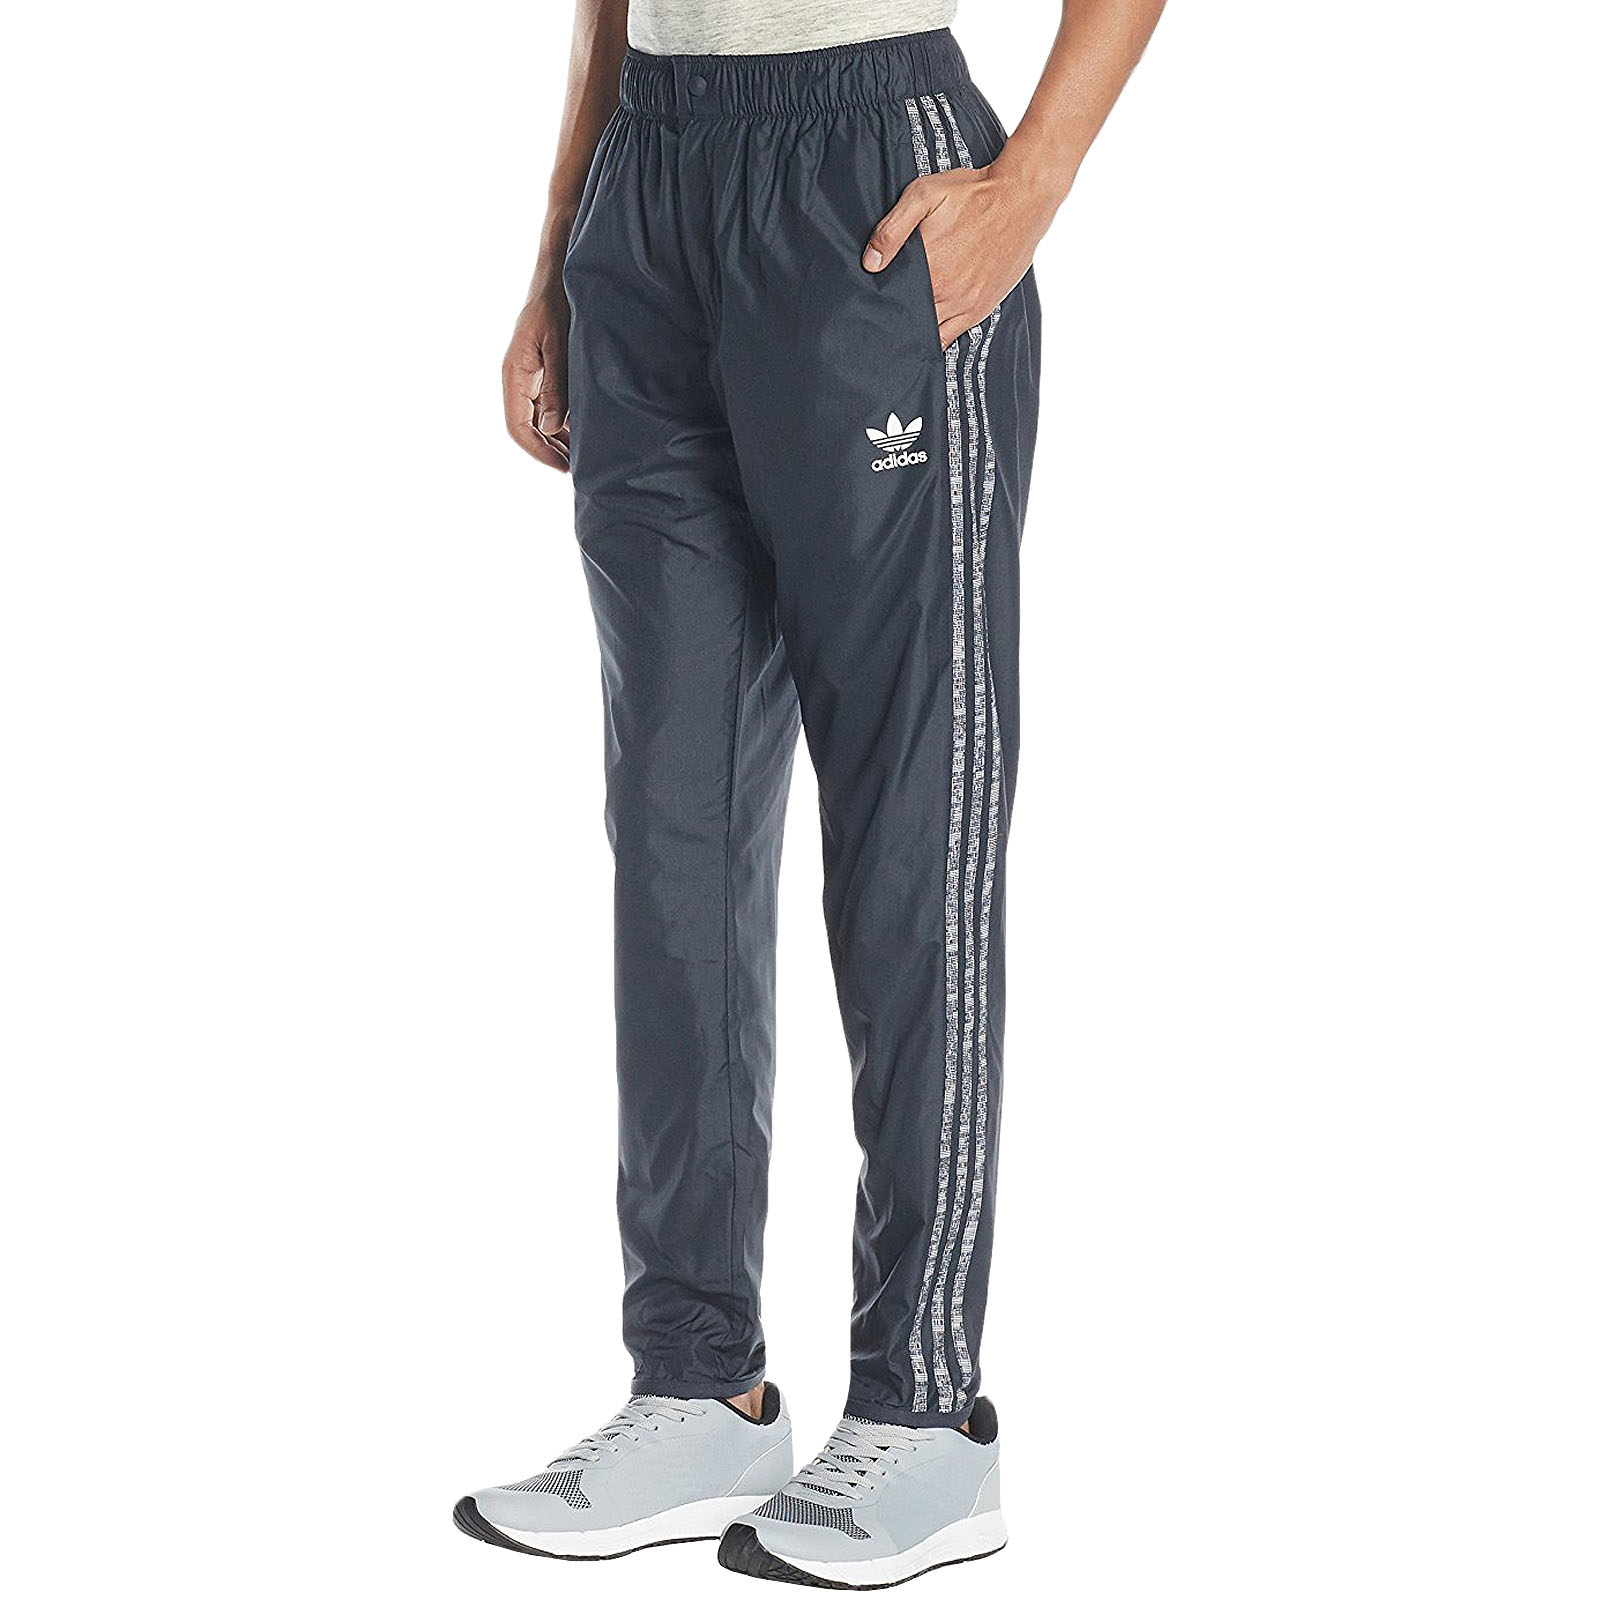 308c28171c95 Details about adidas Originals Mens Trefoil Windpant Tracksuit Bottoms  Joggers Trousers - Grey